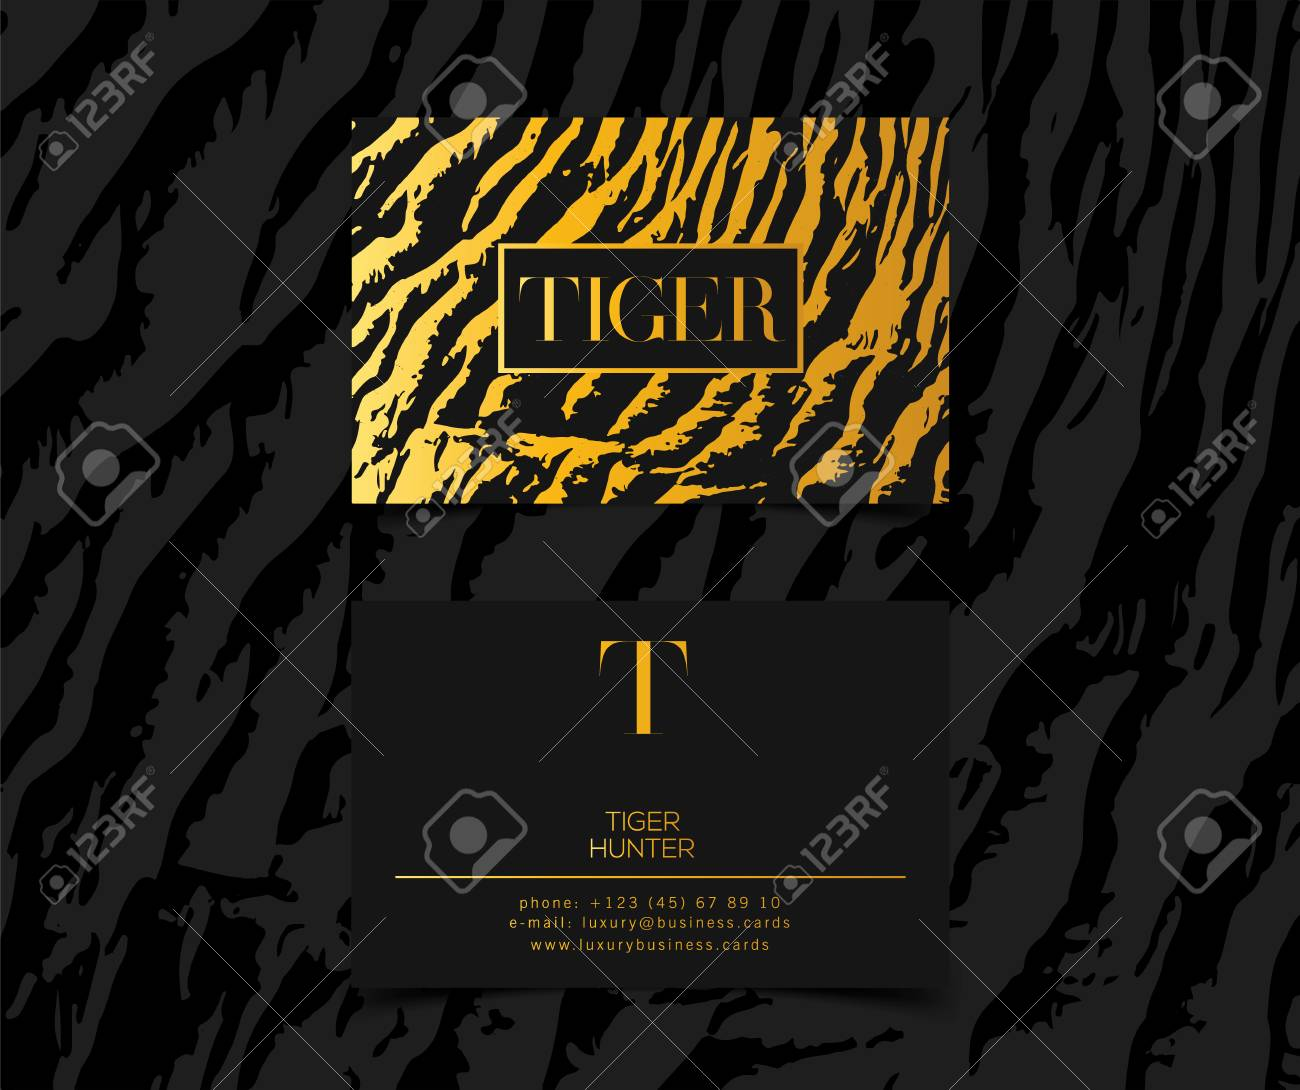 Luxury fashion business cards vector template banner and cover with banco de imagens luxury fashion business cards vector template banner and cover with golden tiger texture pattern gold details on white reheart Choice Image